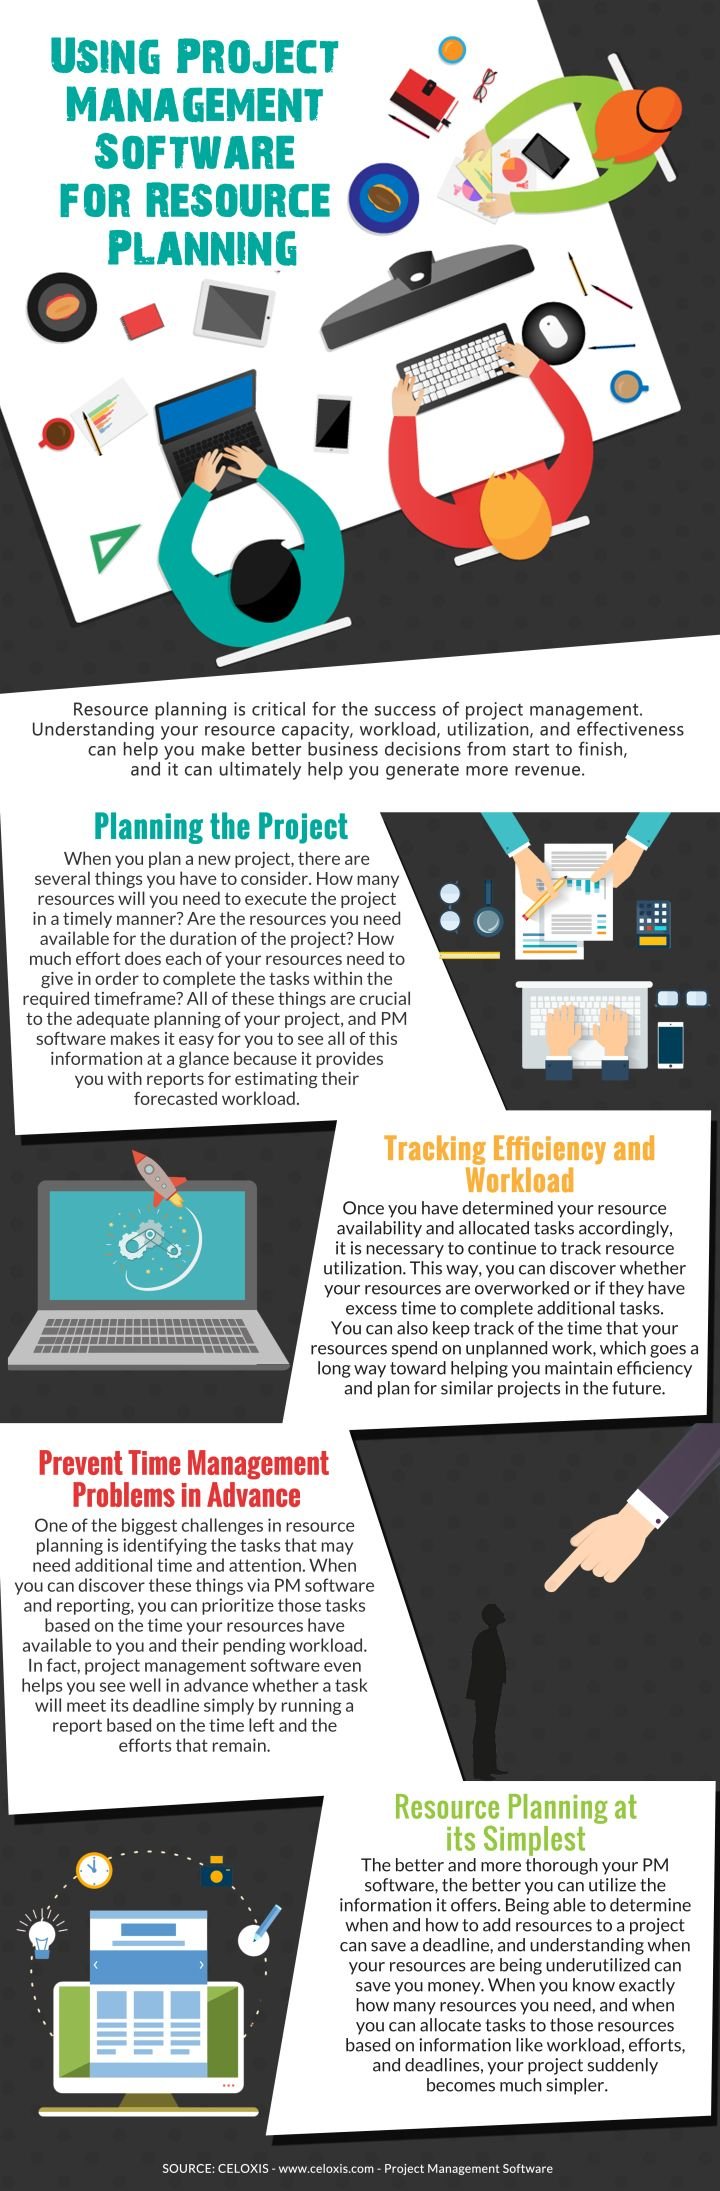 25 best celoxis project management software images on pinterest infographic using project management software for resource planning 1betcityfo Image collections